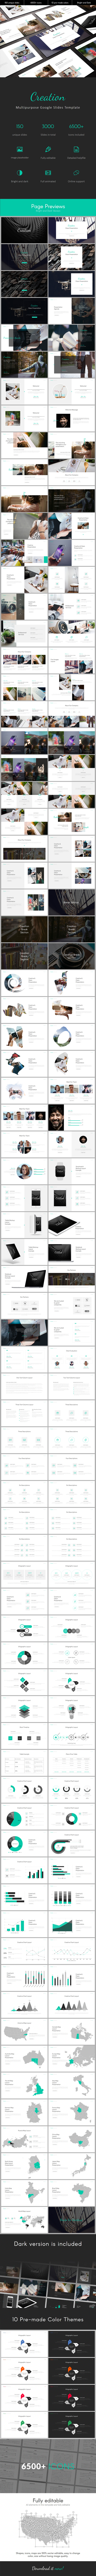 Creation Multipurpose Google Slides Template - Google Slides Presentation Templates